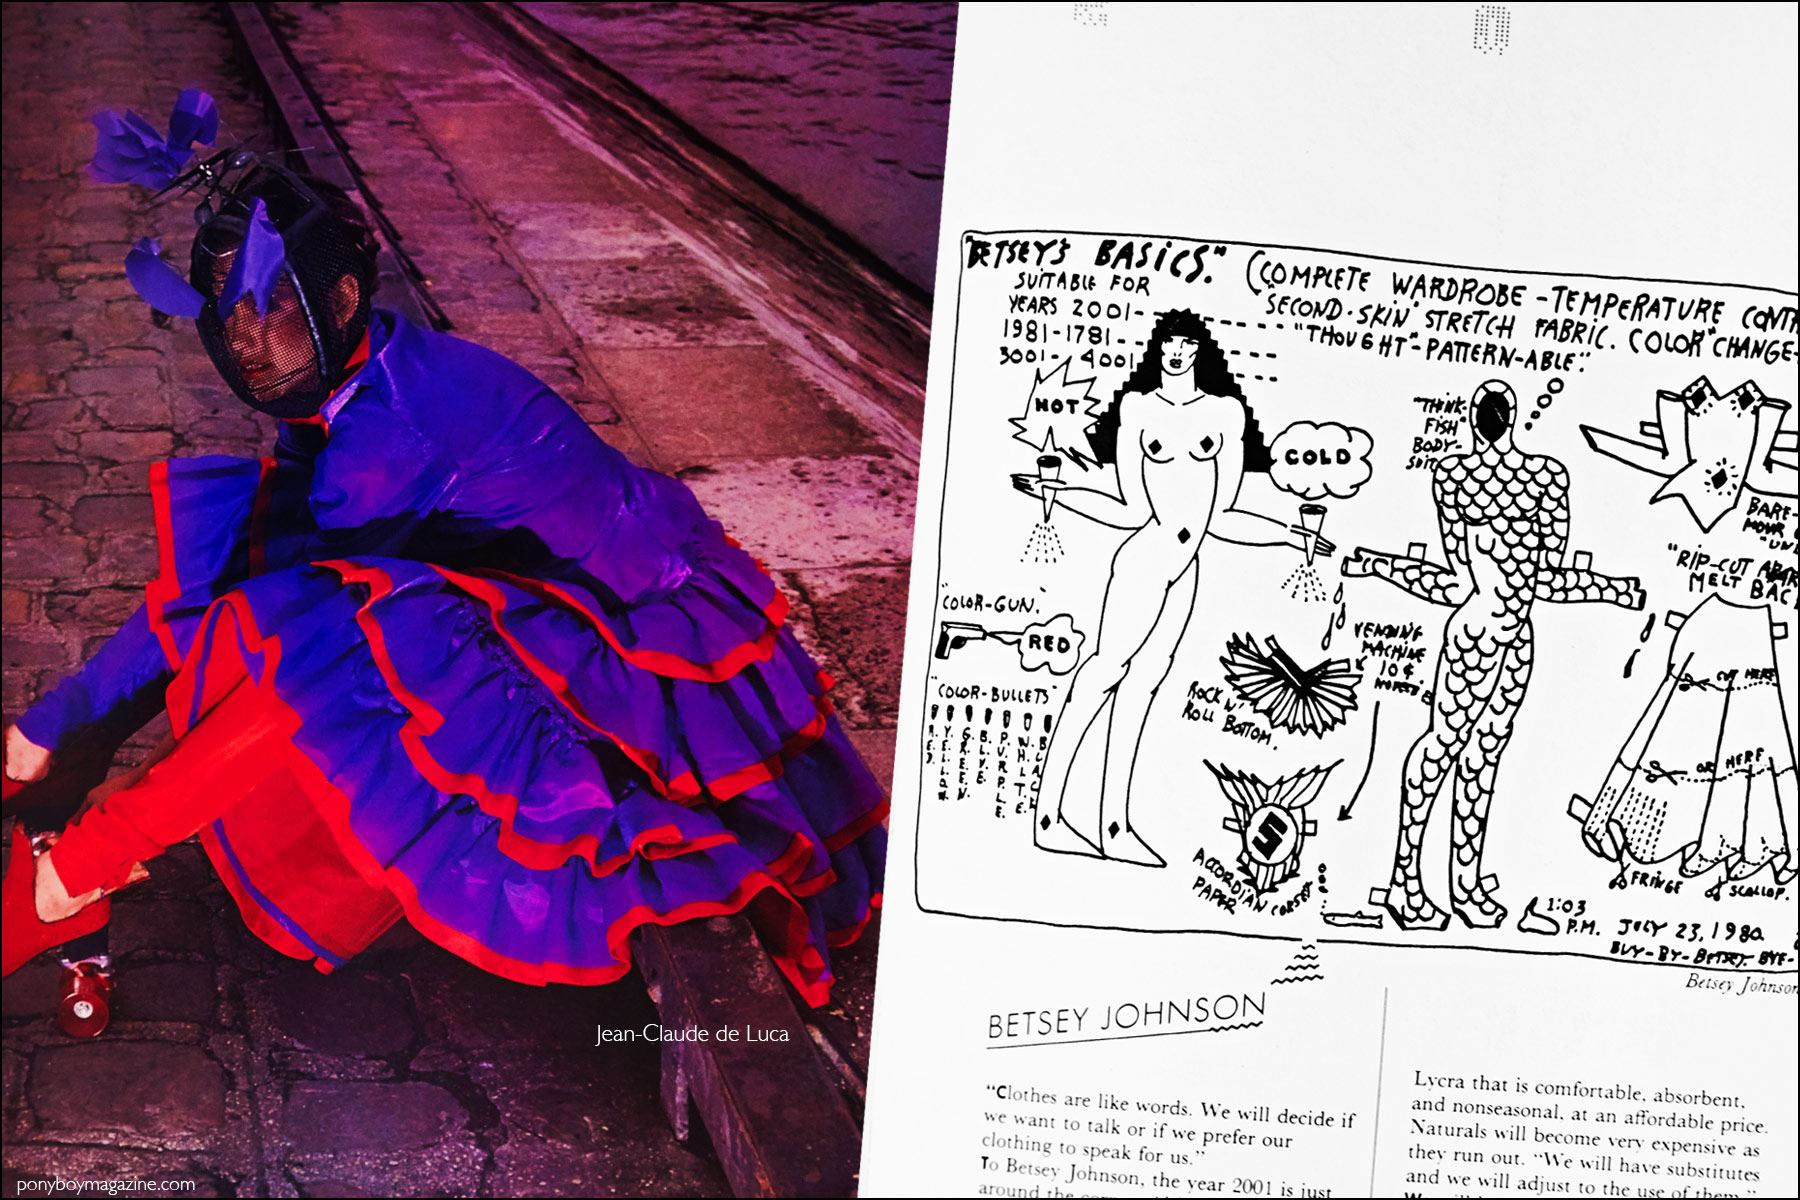 A fashion photograph featuring a design by Jean-Claude de Luca, as well as a fashion sketch by Betsey Johnson featured in the book Fashion: 2001 by Lucille Khornak. Ponyboy magazine NY.